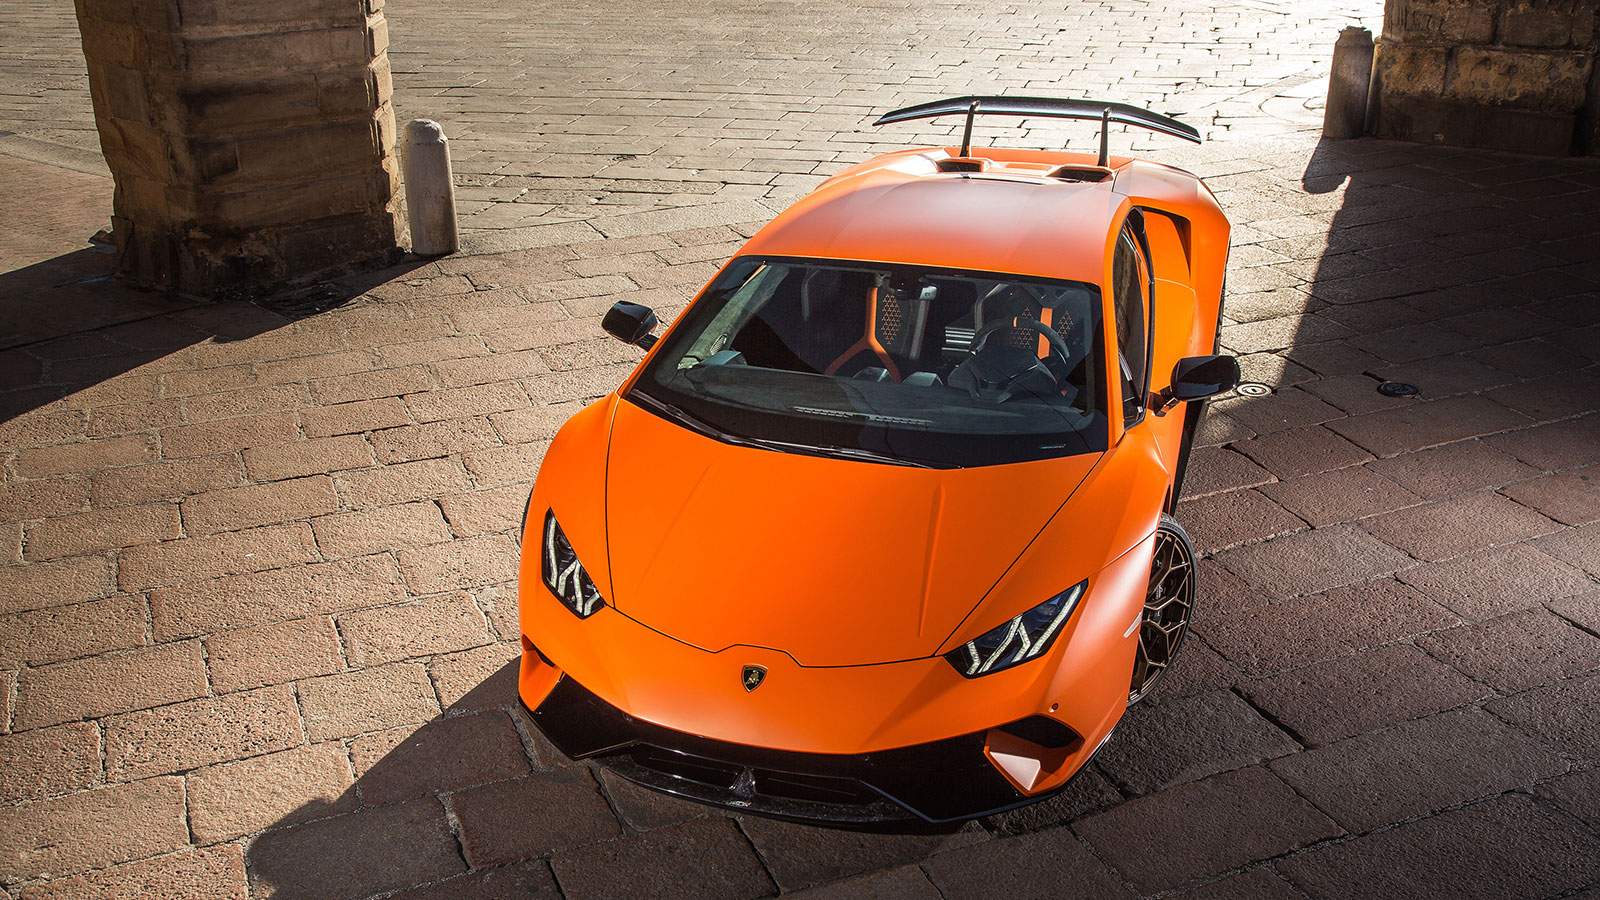 Lamborghini Huracan Performante - Raging Technology image 9